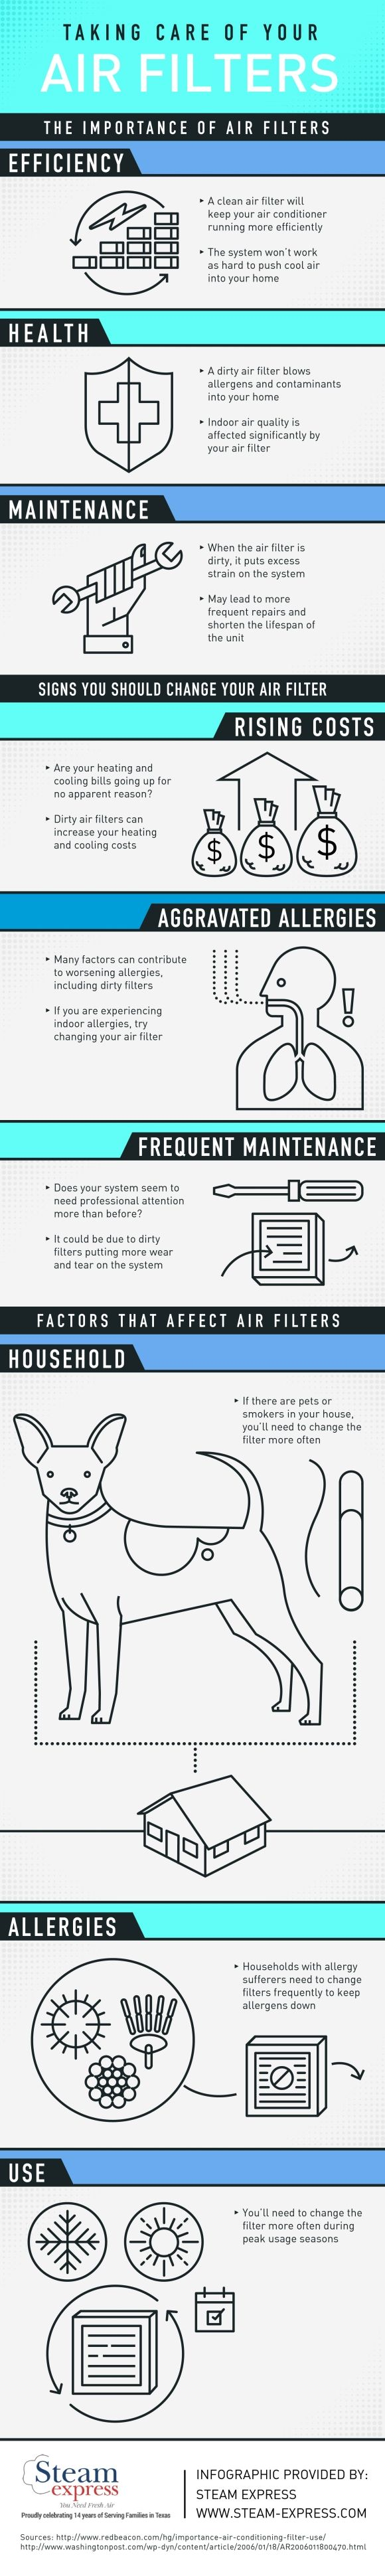 166 best Air Conditioning images on Pinterest | Conditioning, Air ...